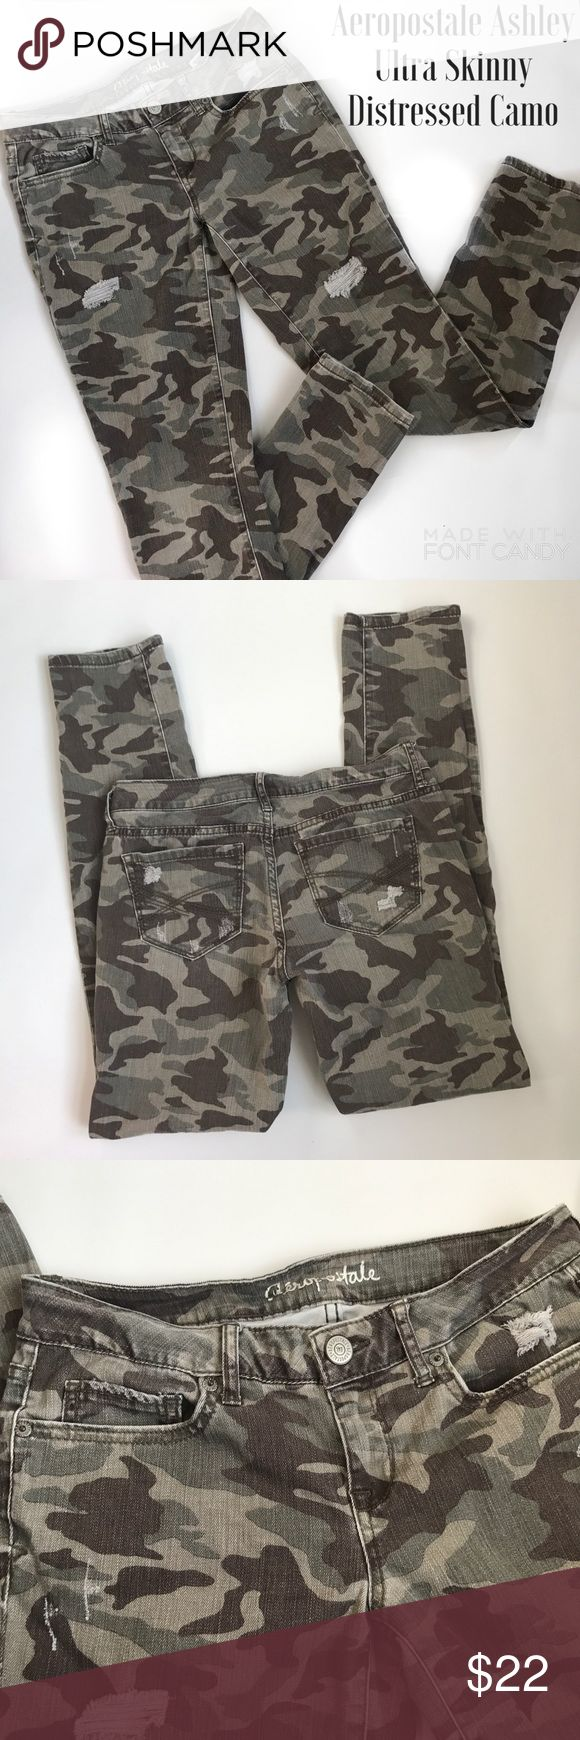 """Aero Ashley Ultra Skinny Distressed Camo Jeans Cute Camo jeans with just the right distressed effect, perfect with combat boots or flats or flip flops 💕 Size 4 they measures 15-15.5"""" across waist laying flat with a 30"""" inseam and 7"""" rise...bundle to save more plus ⚡️📦📫😁💕 Aeropostale Jeans Skinny"""